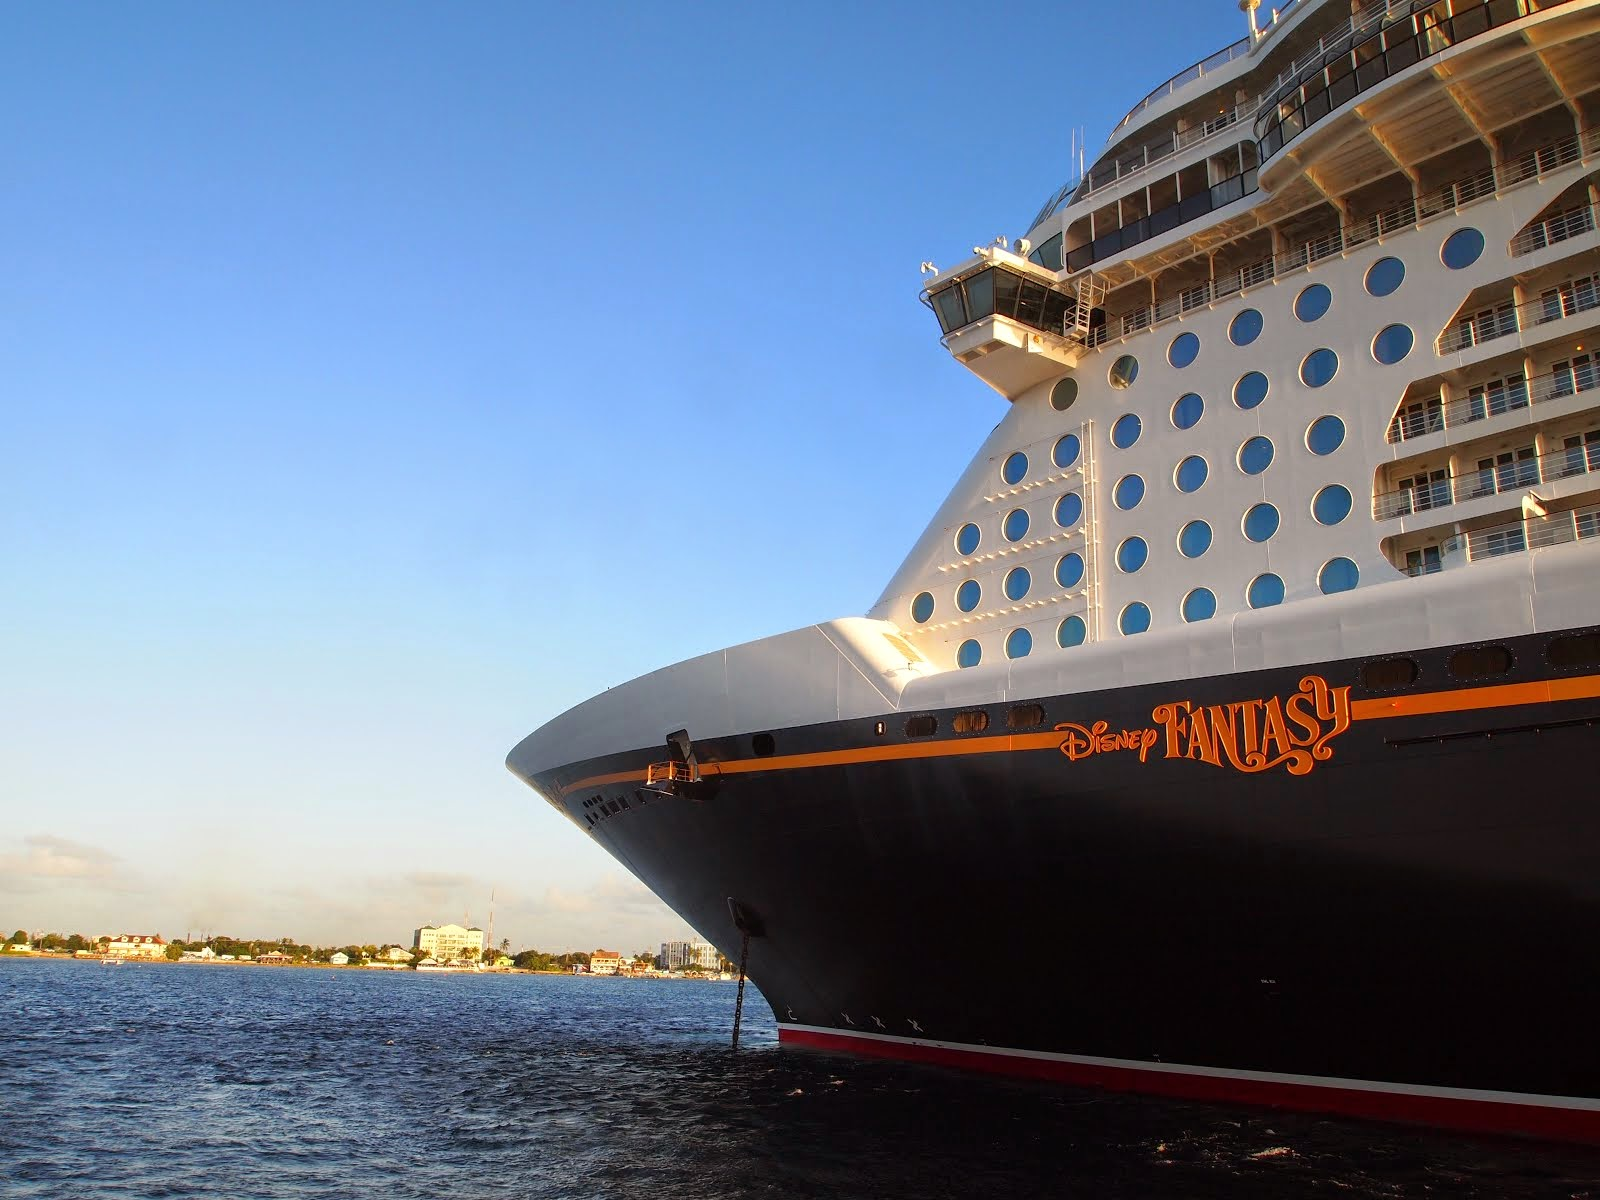 Disney Cruise Line - Explore the Caribbean Sea with The World's Best Cruise by Disney.